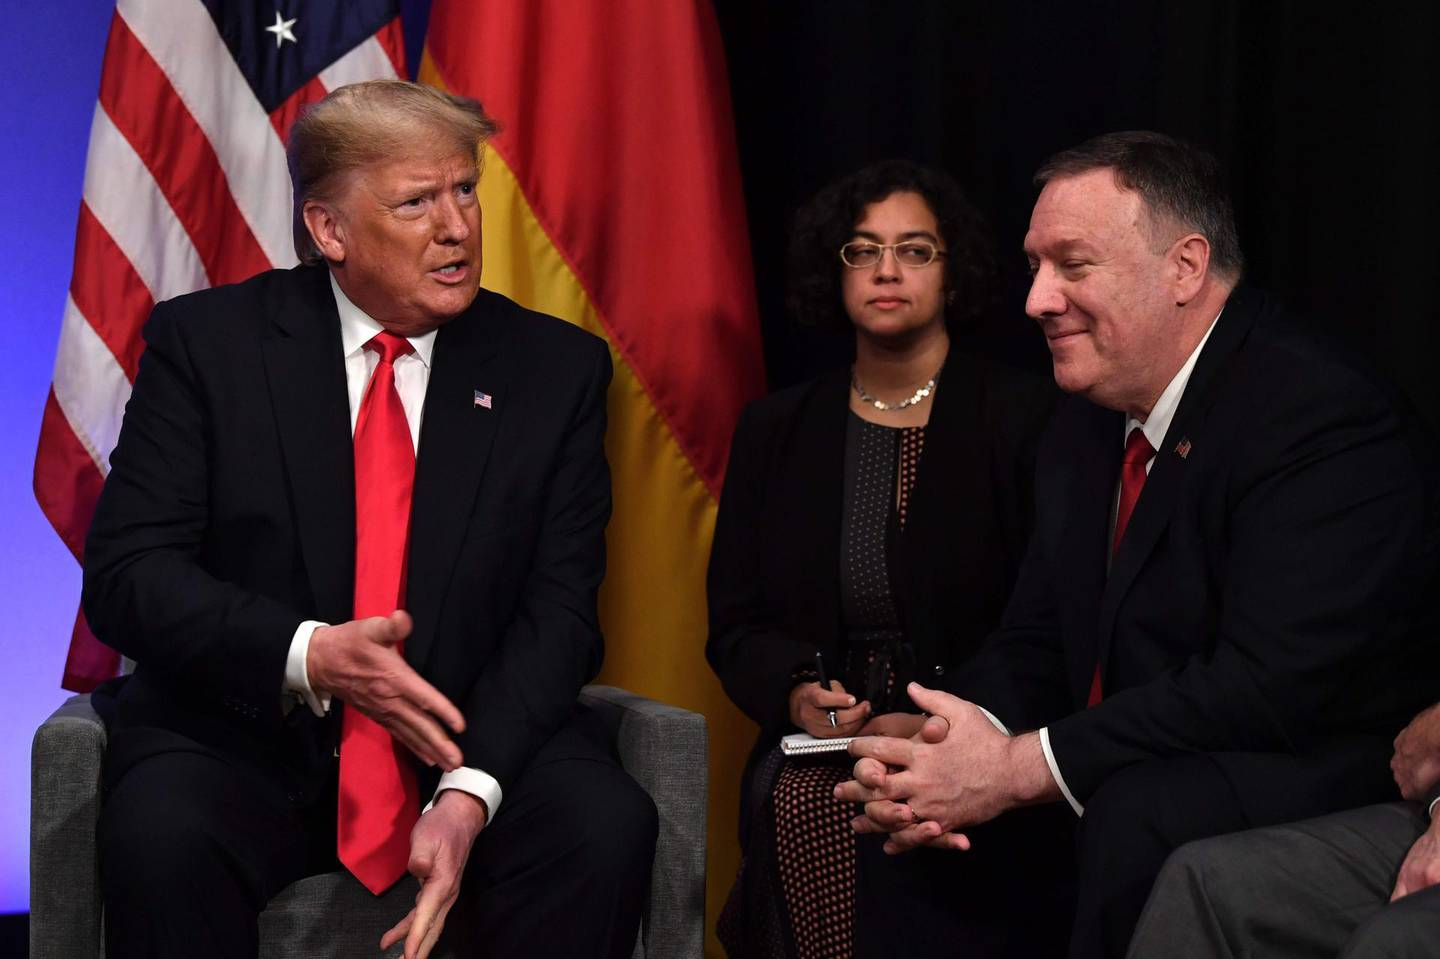 US President Donald Trump (L) speaks to US Secretary of State Mike Pompeo after a bilateral meeting with German Chancellor Angela Merkel on the sidelines of the NATO summit at the Grove hotel in Watford, northeast of London on December 4, 2019. / AFP / Nicholas Kamm